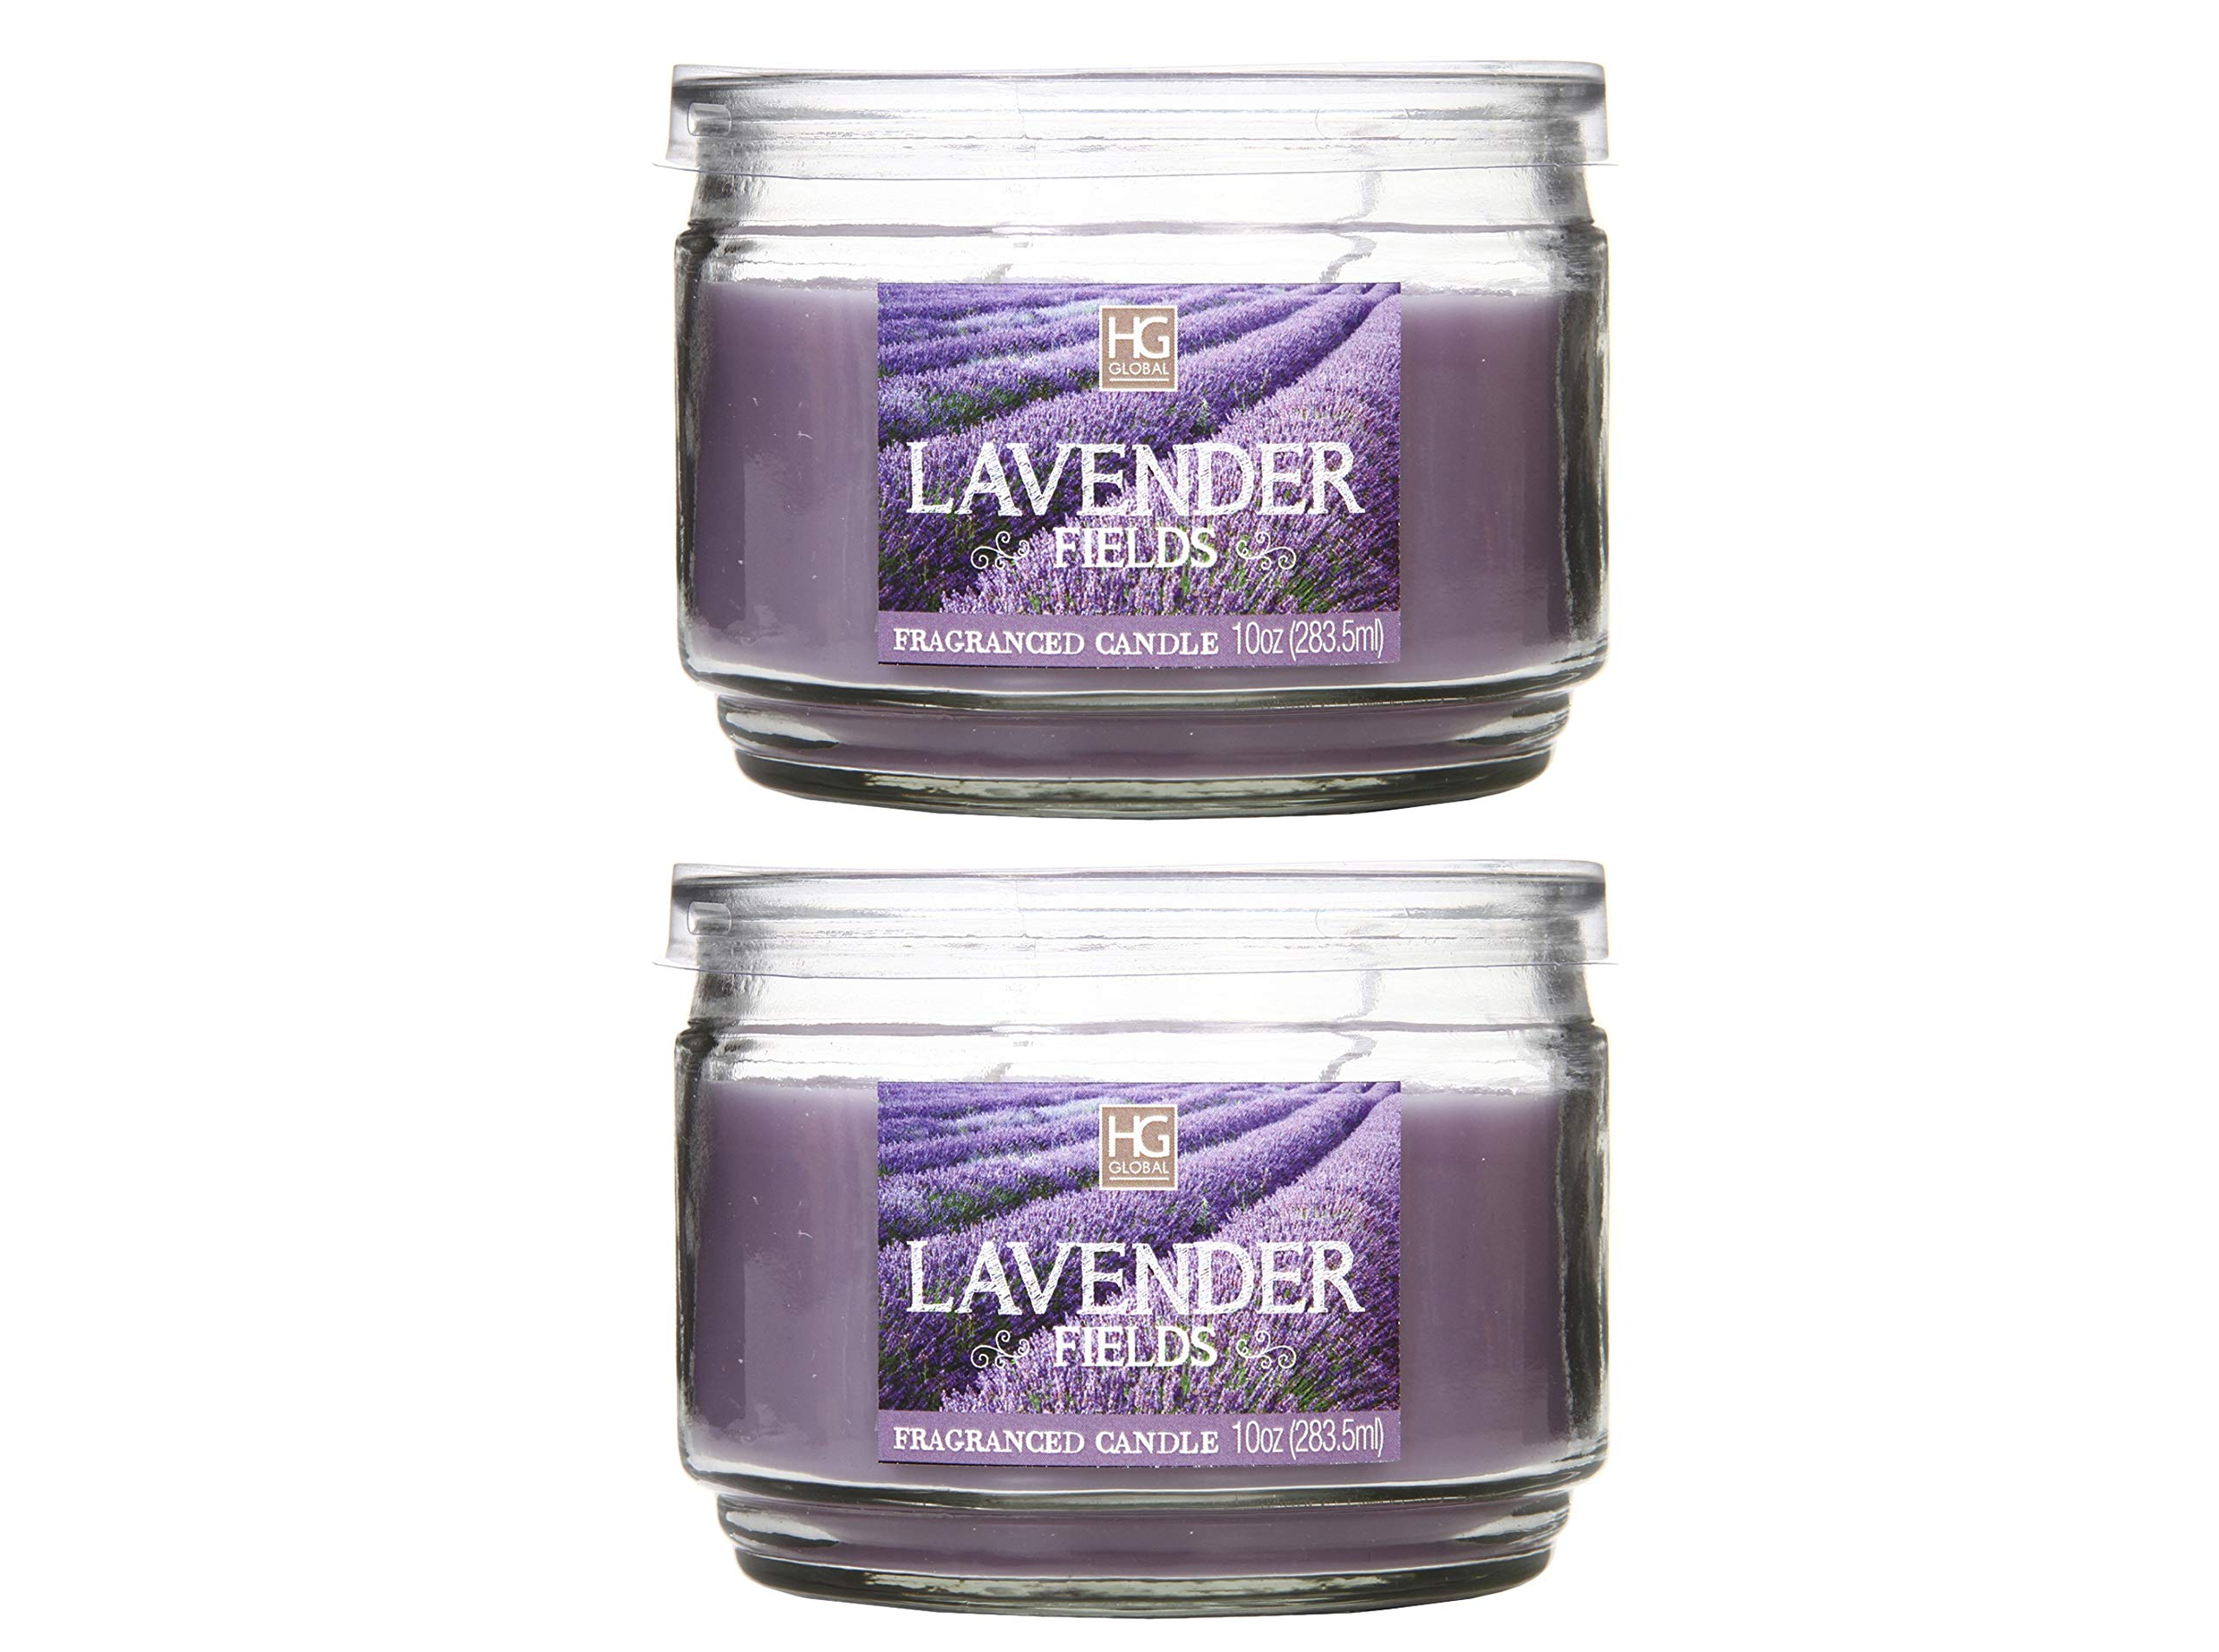 Hosley Set of 2 Lavender Fields Highly Scented, 2 Wick, 10 Oz Wax, Jar Candle. Ideal Votive Gift for Party Favor, Bridal, Wedding Spa Reiki, Meditation, Bathroom Settings O9.